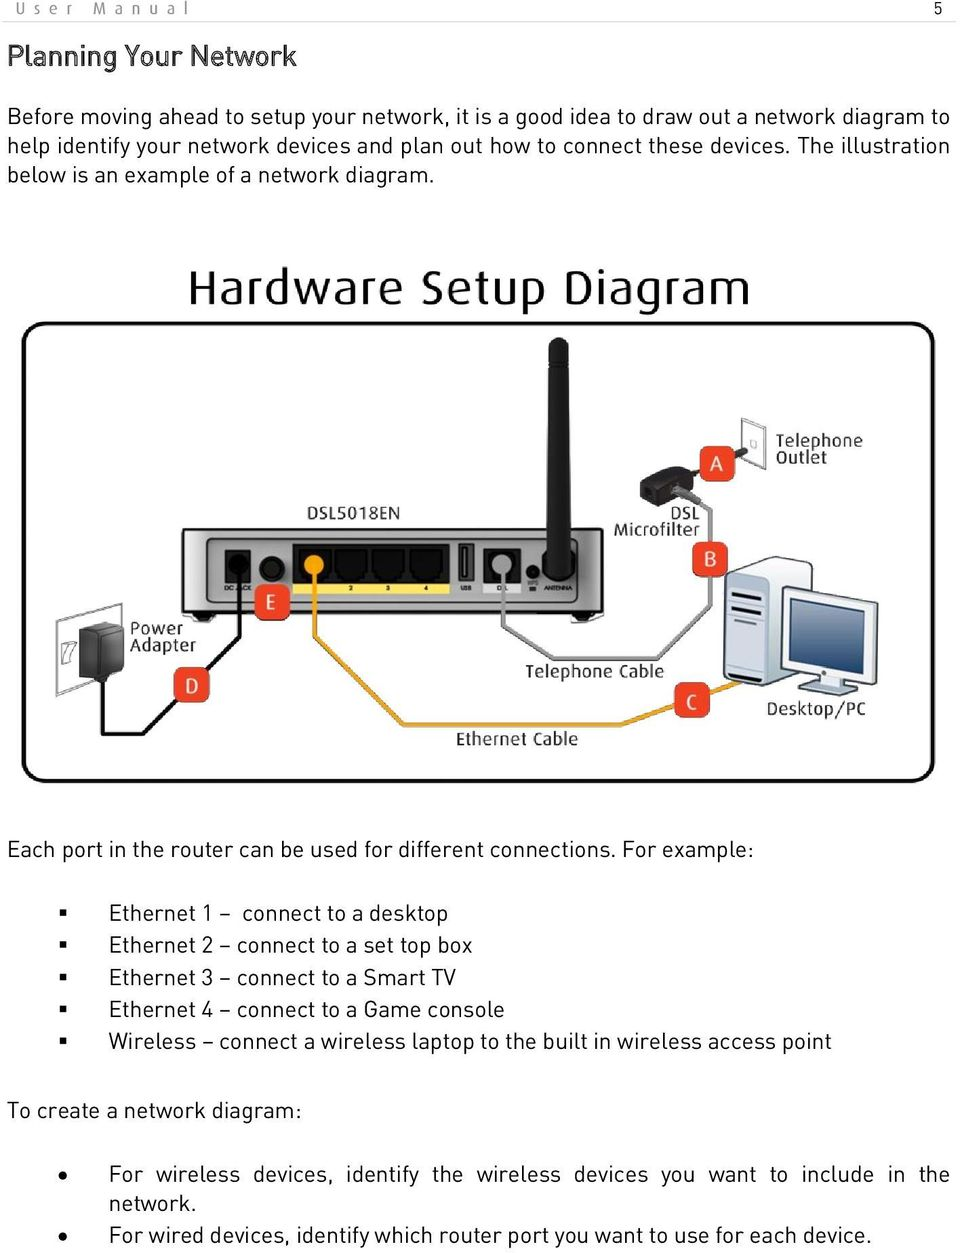 hight resolution of for example ethernet 1 connect to a desktop ethernet 2 connect to a set top